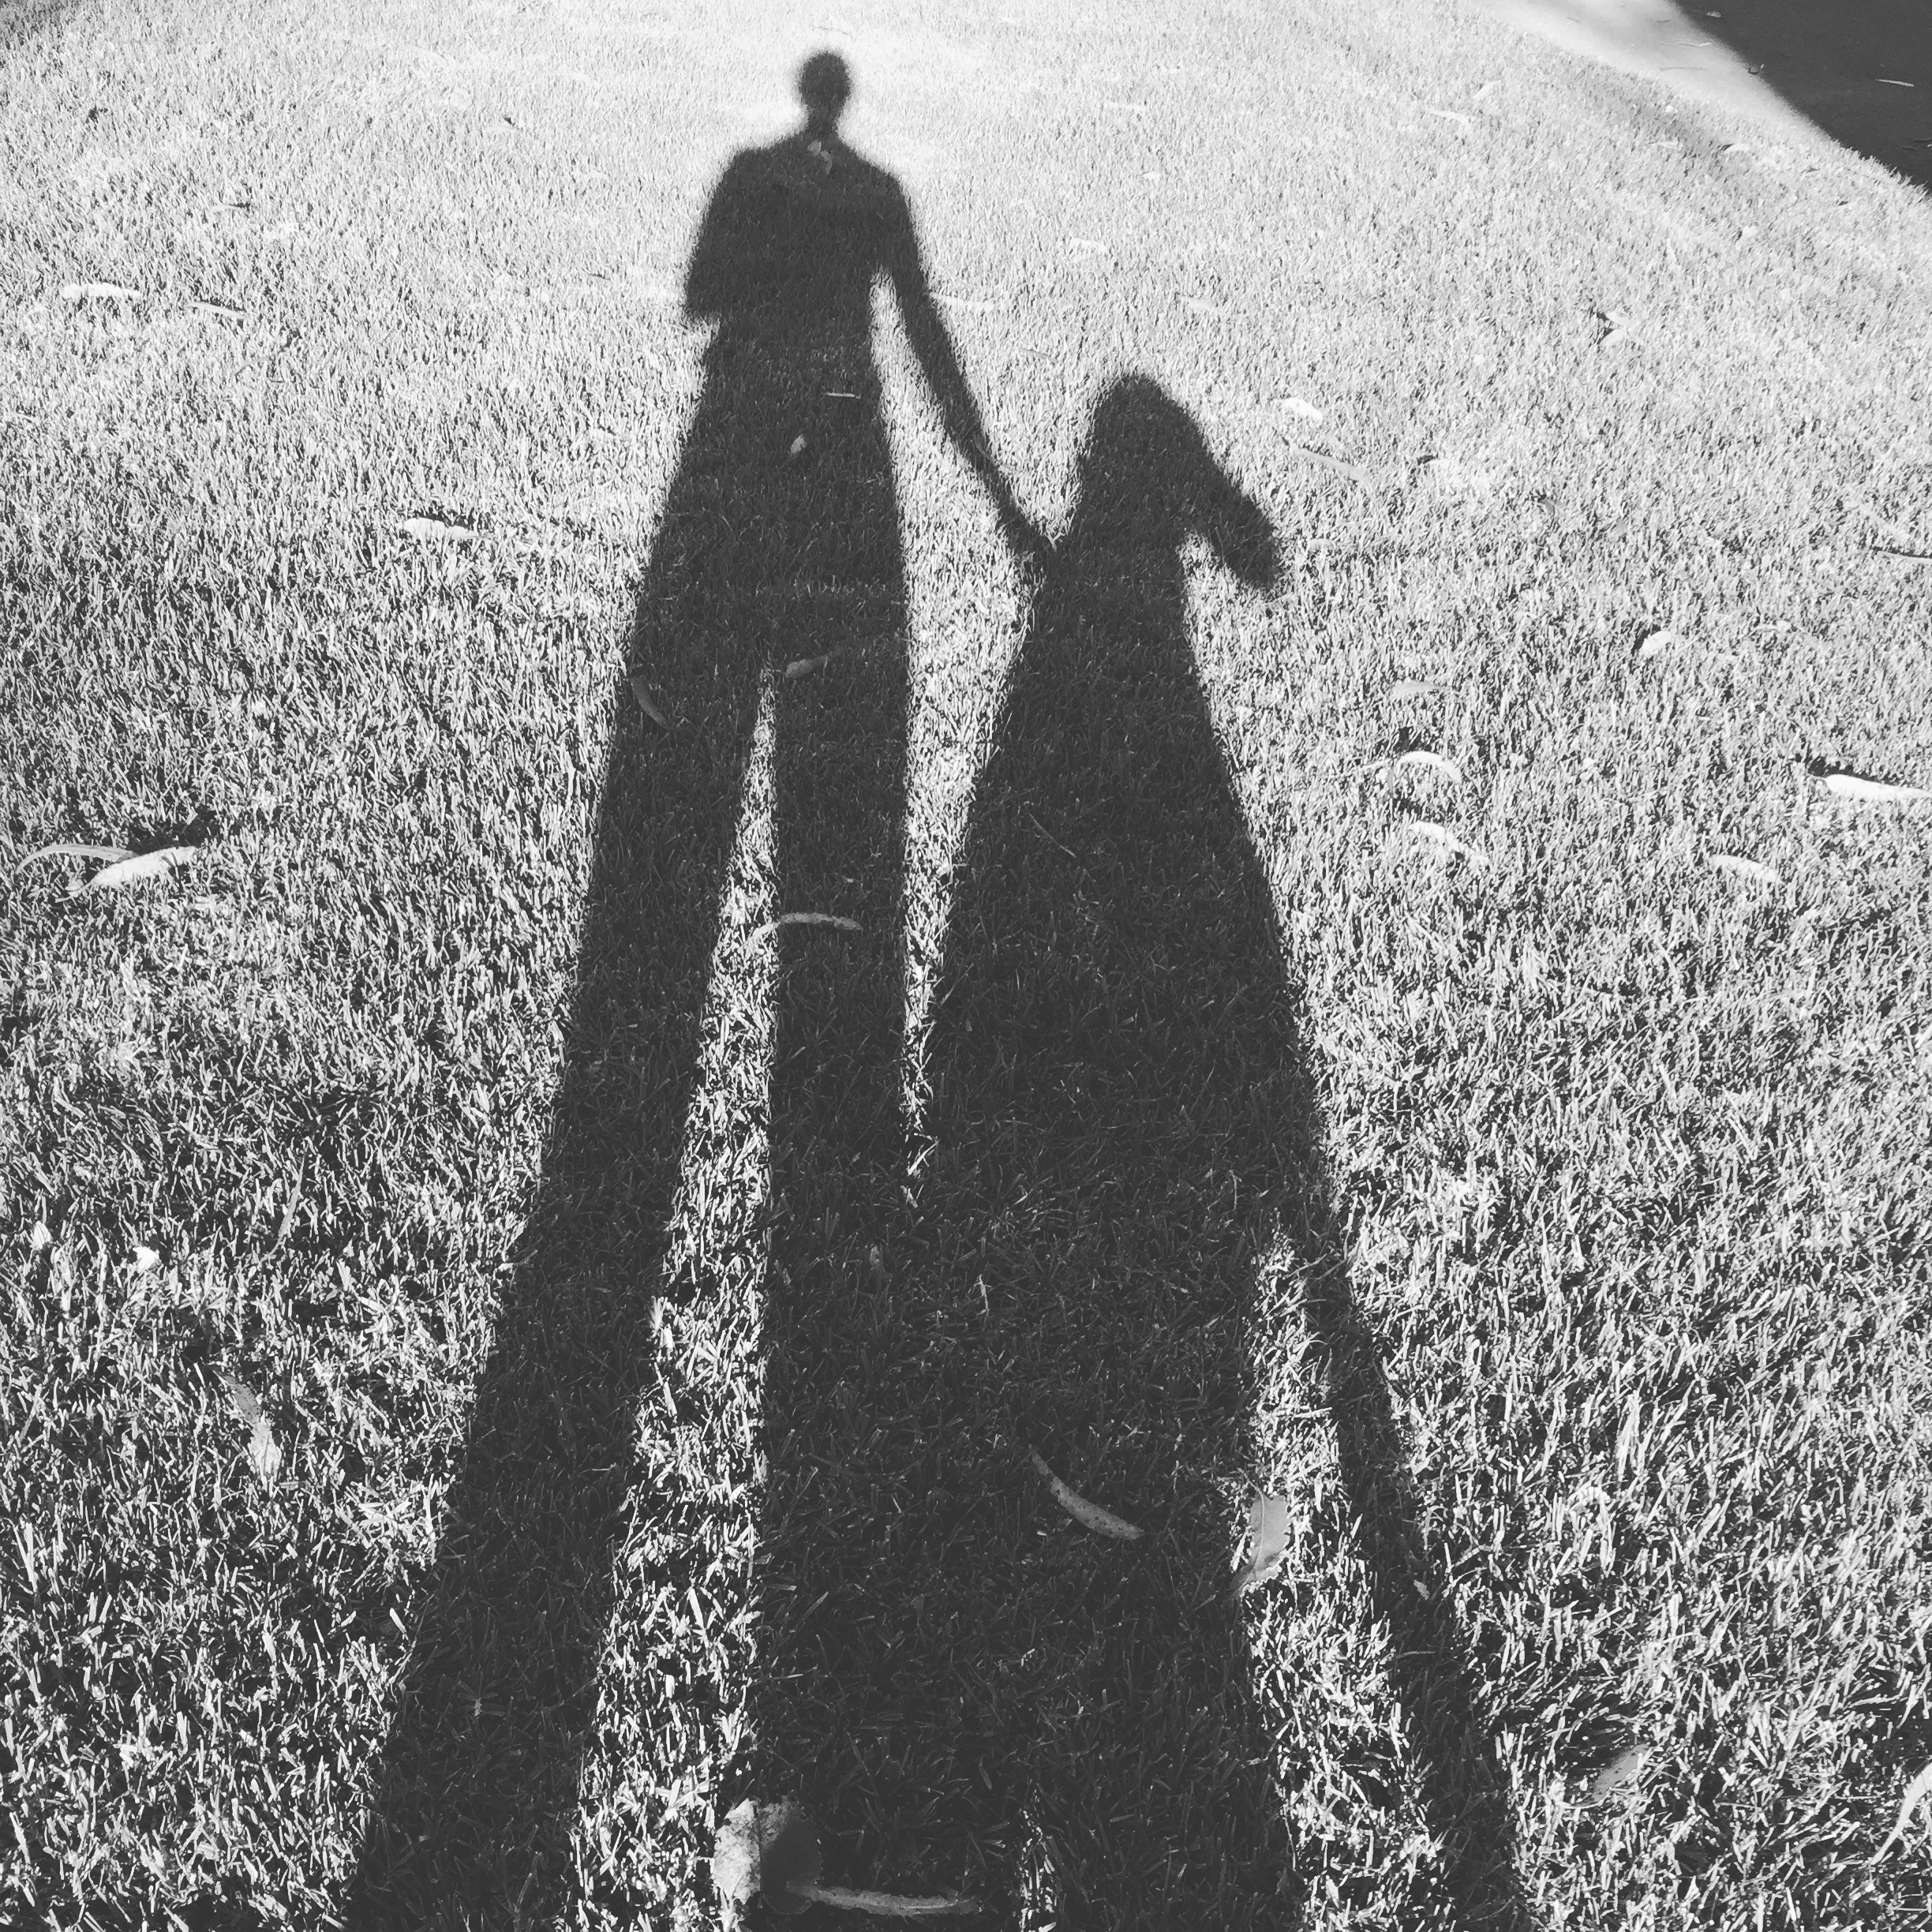 A black and white photo of the author's shadow along with her dog's shadow.